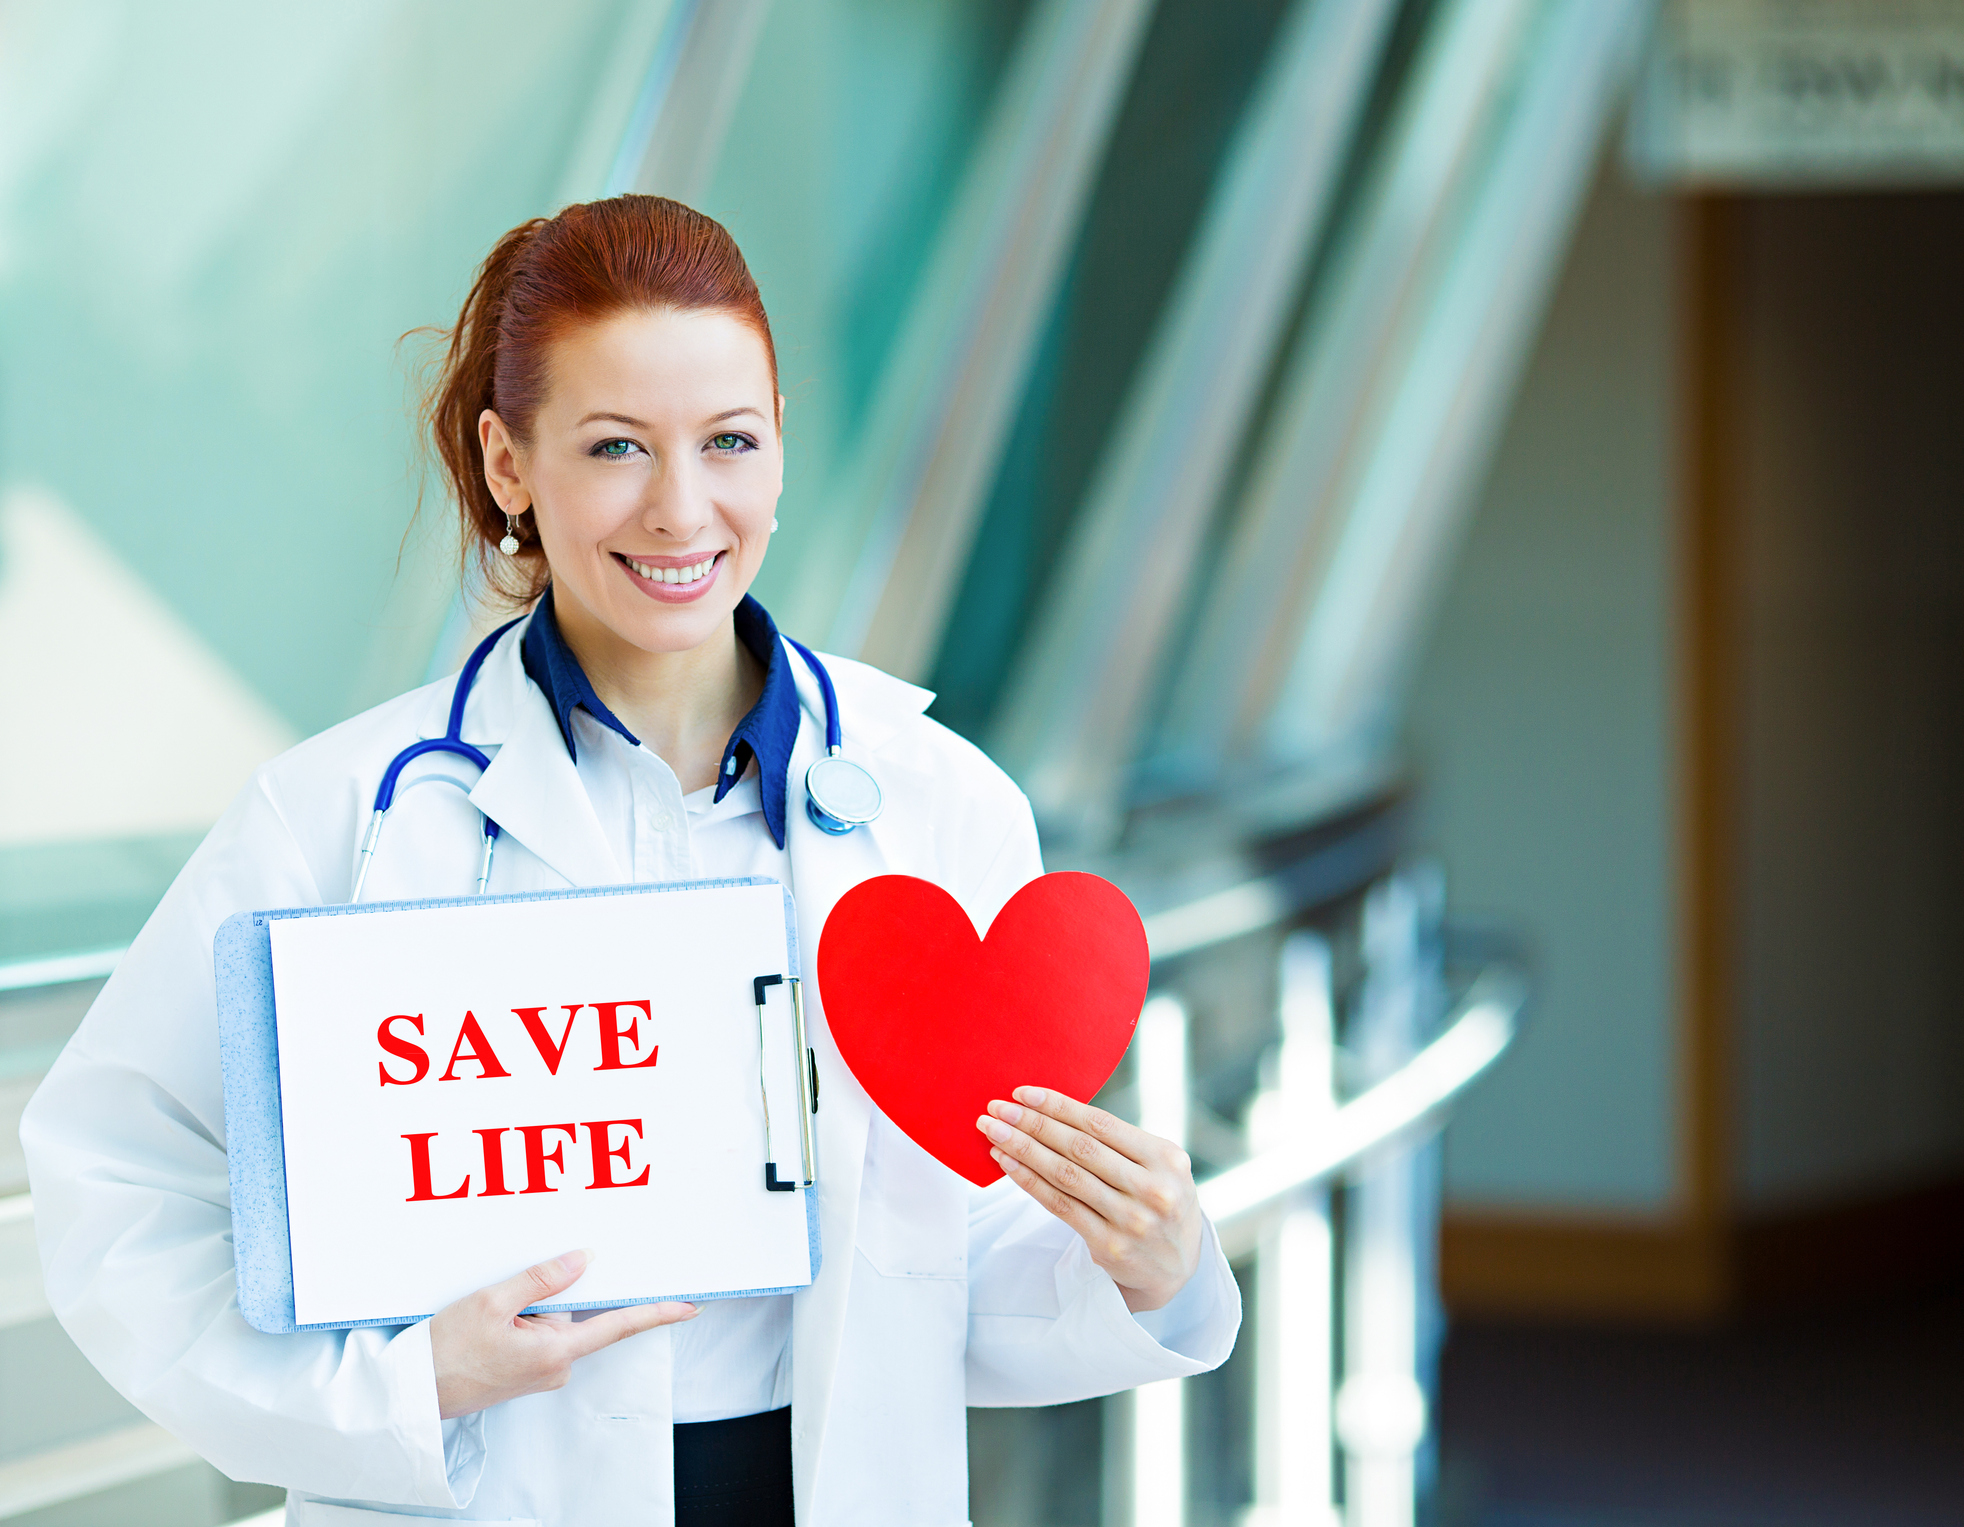 Closeup portrait happy smiling health care professional, woman transplantation medicine doctor, cardiologist with stethoscope holding sign save life, heart isolated hospital hallway background.